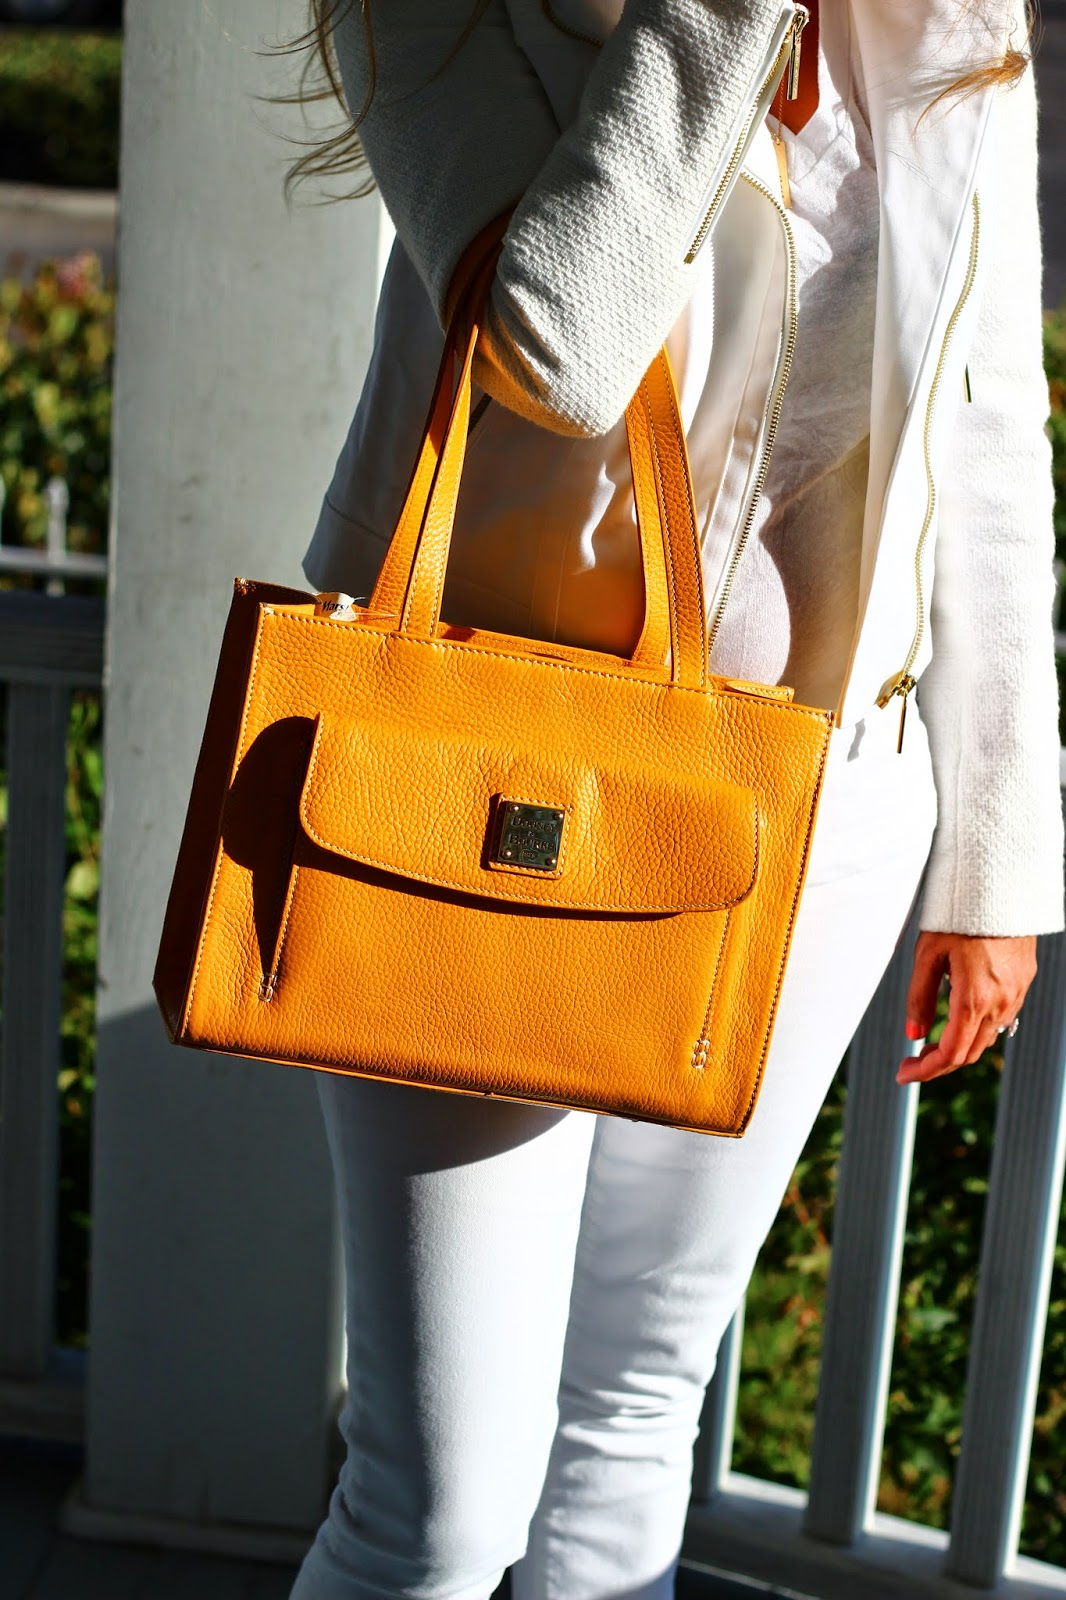 dooney and bourke, yellow tote